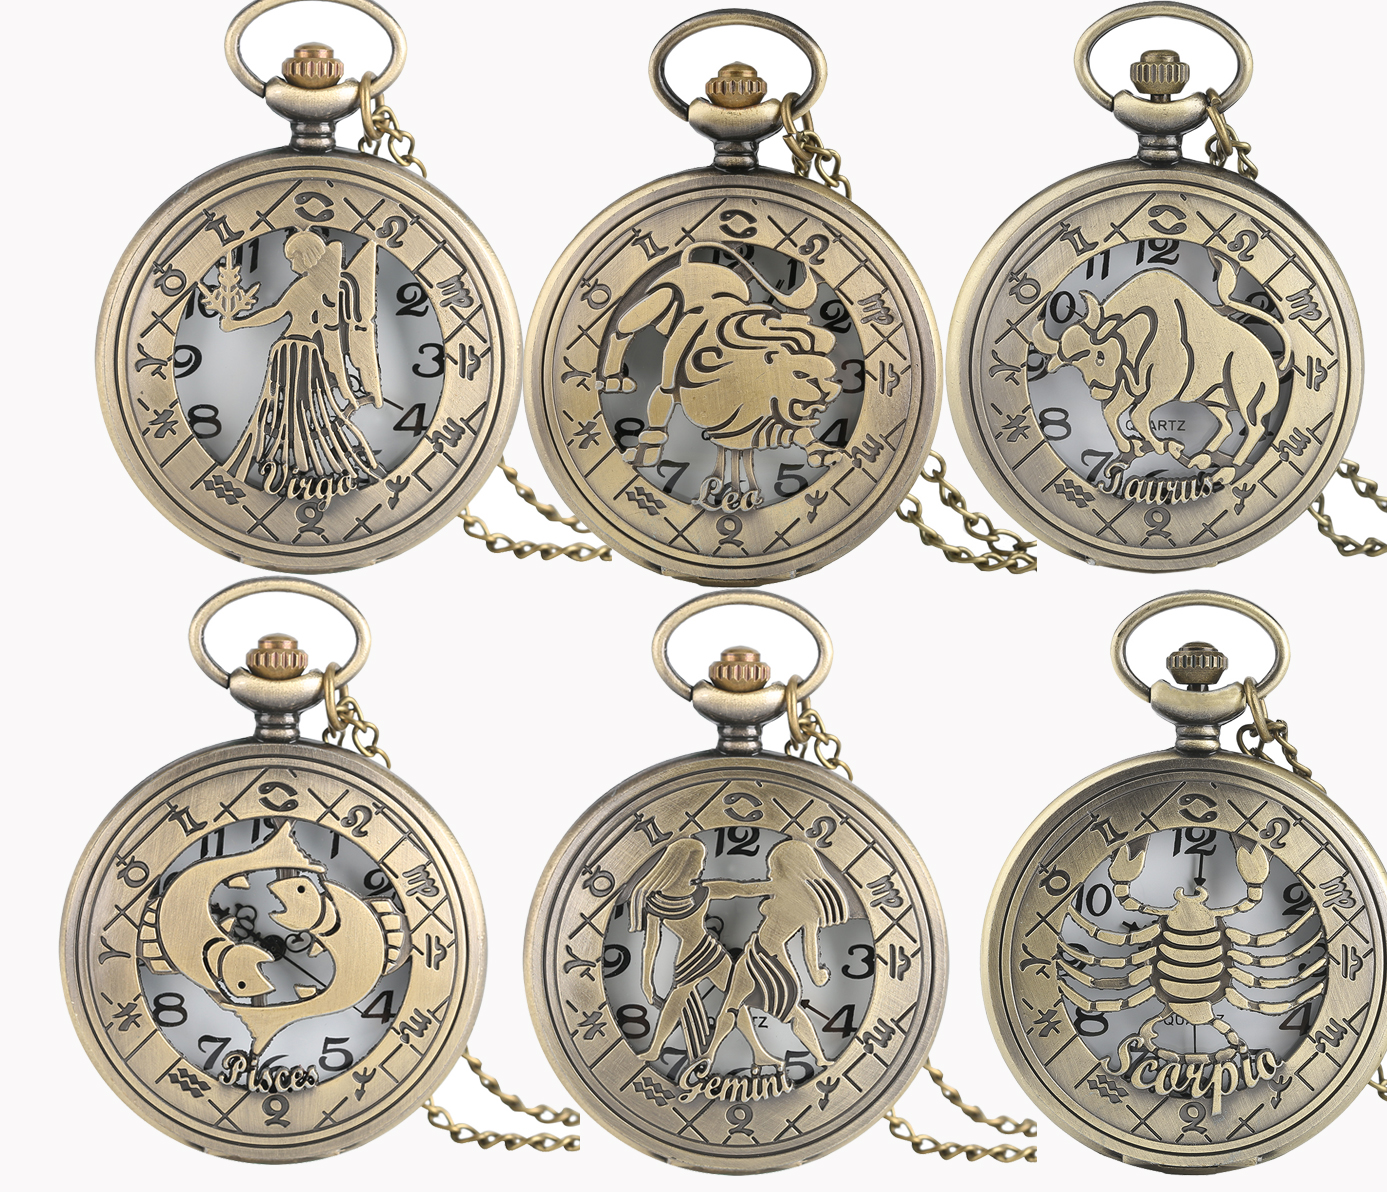 Antique Twelve Constellations Theme Pocket Watch Unisex Copper Hollow Pendant Chain Gemini Leo Scorpio Quartz Clock